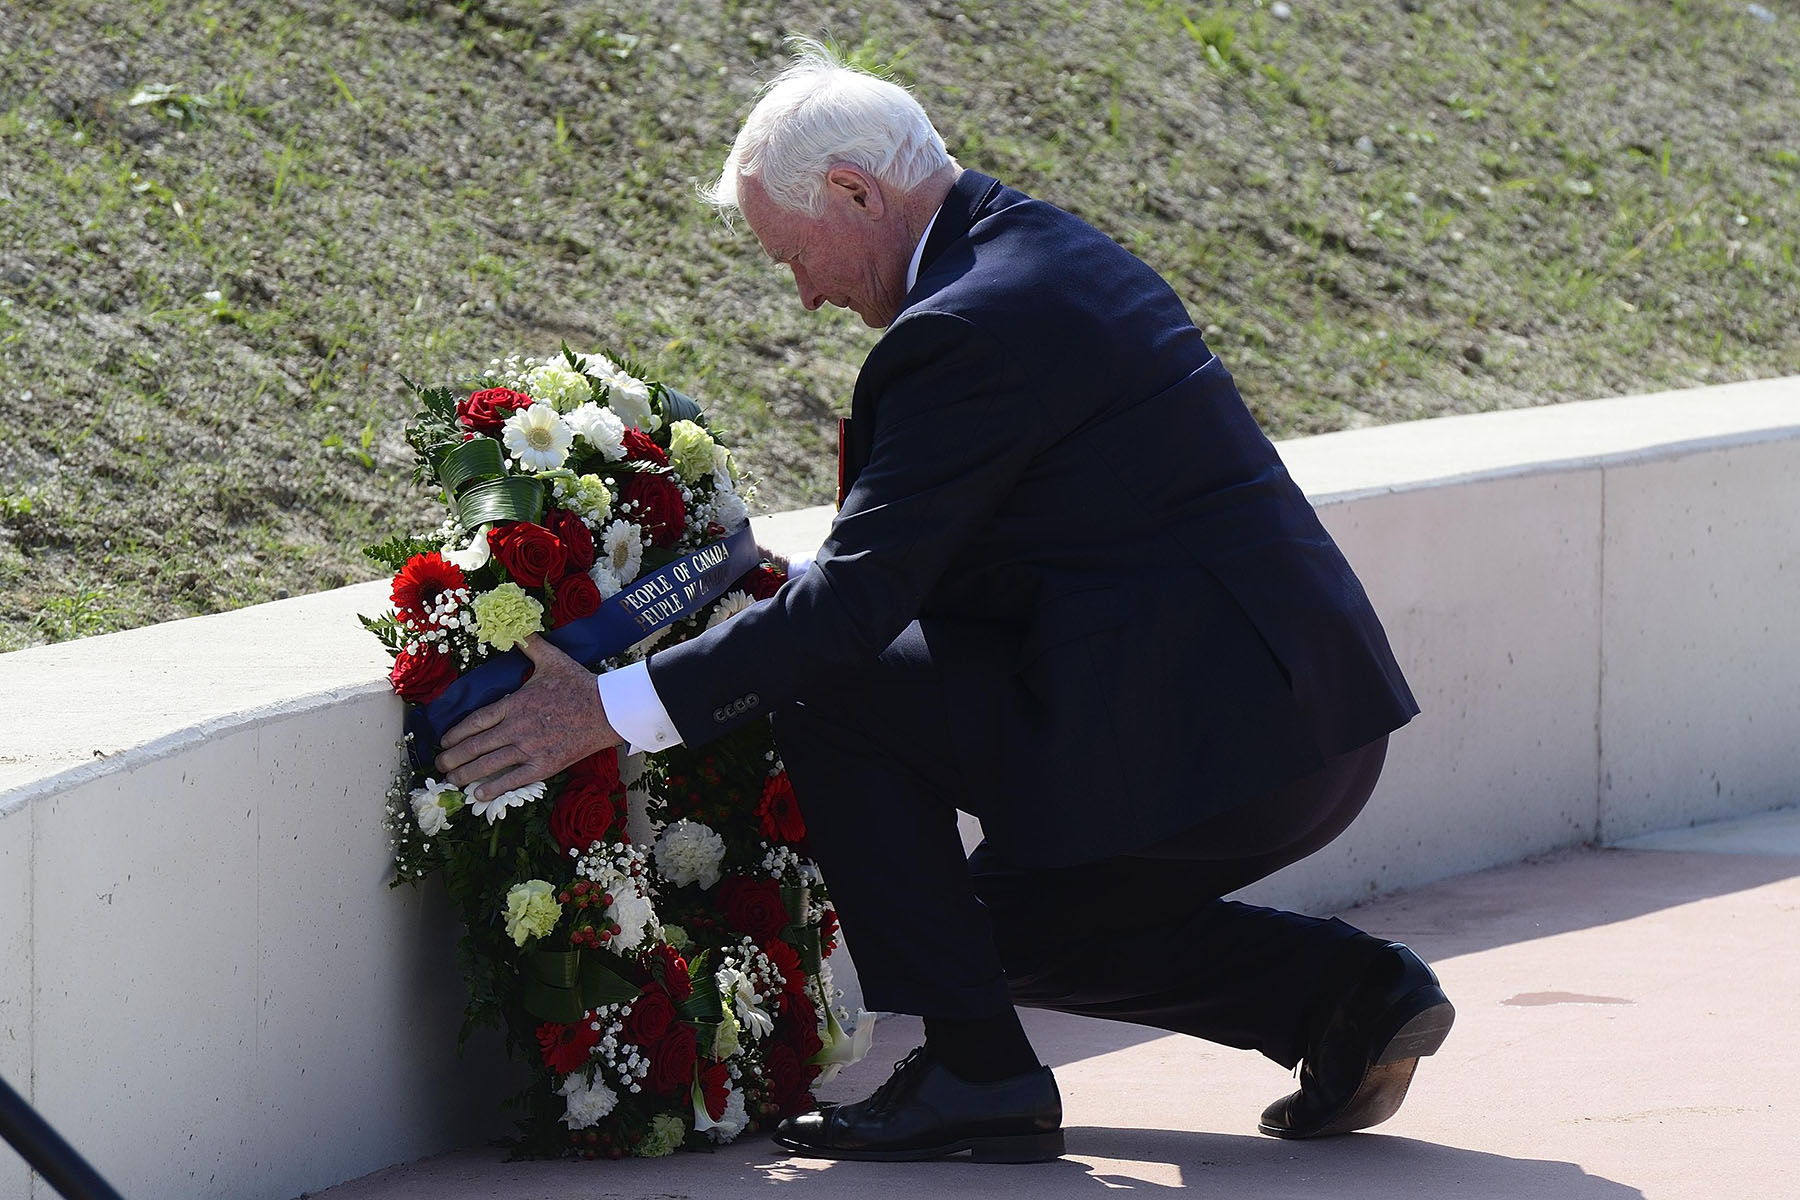 His Excellency laid a wreath on behalf of the people of Canada.